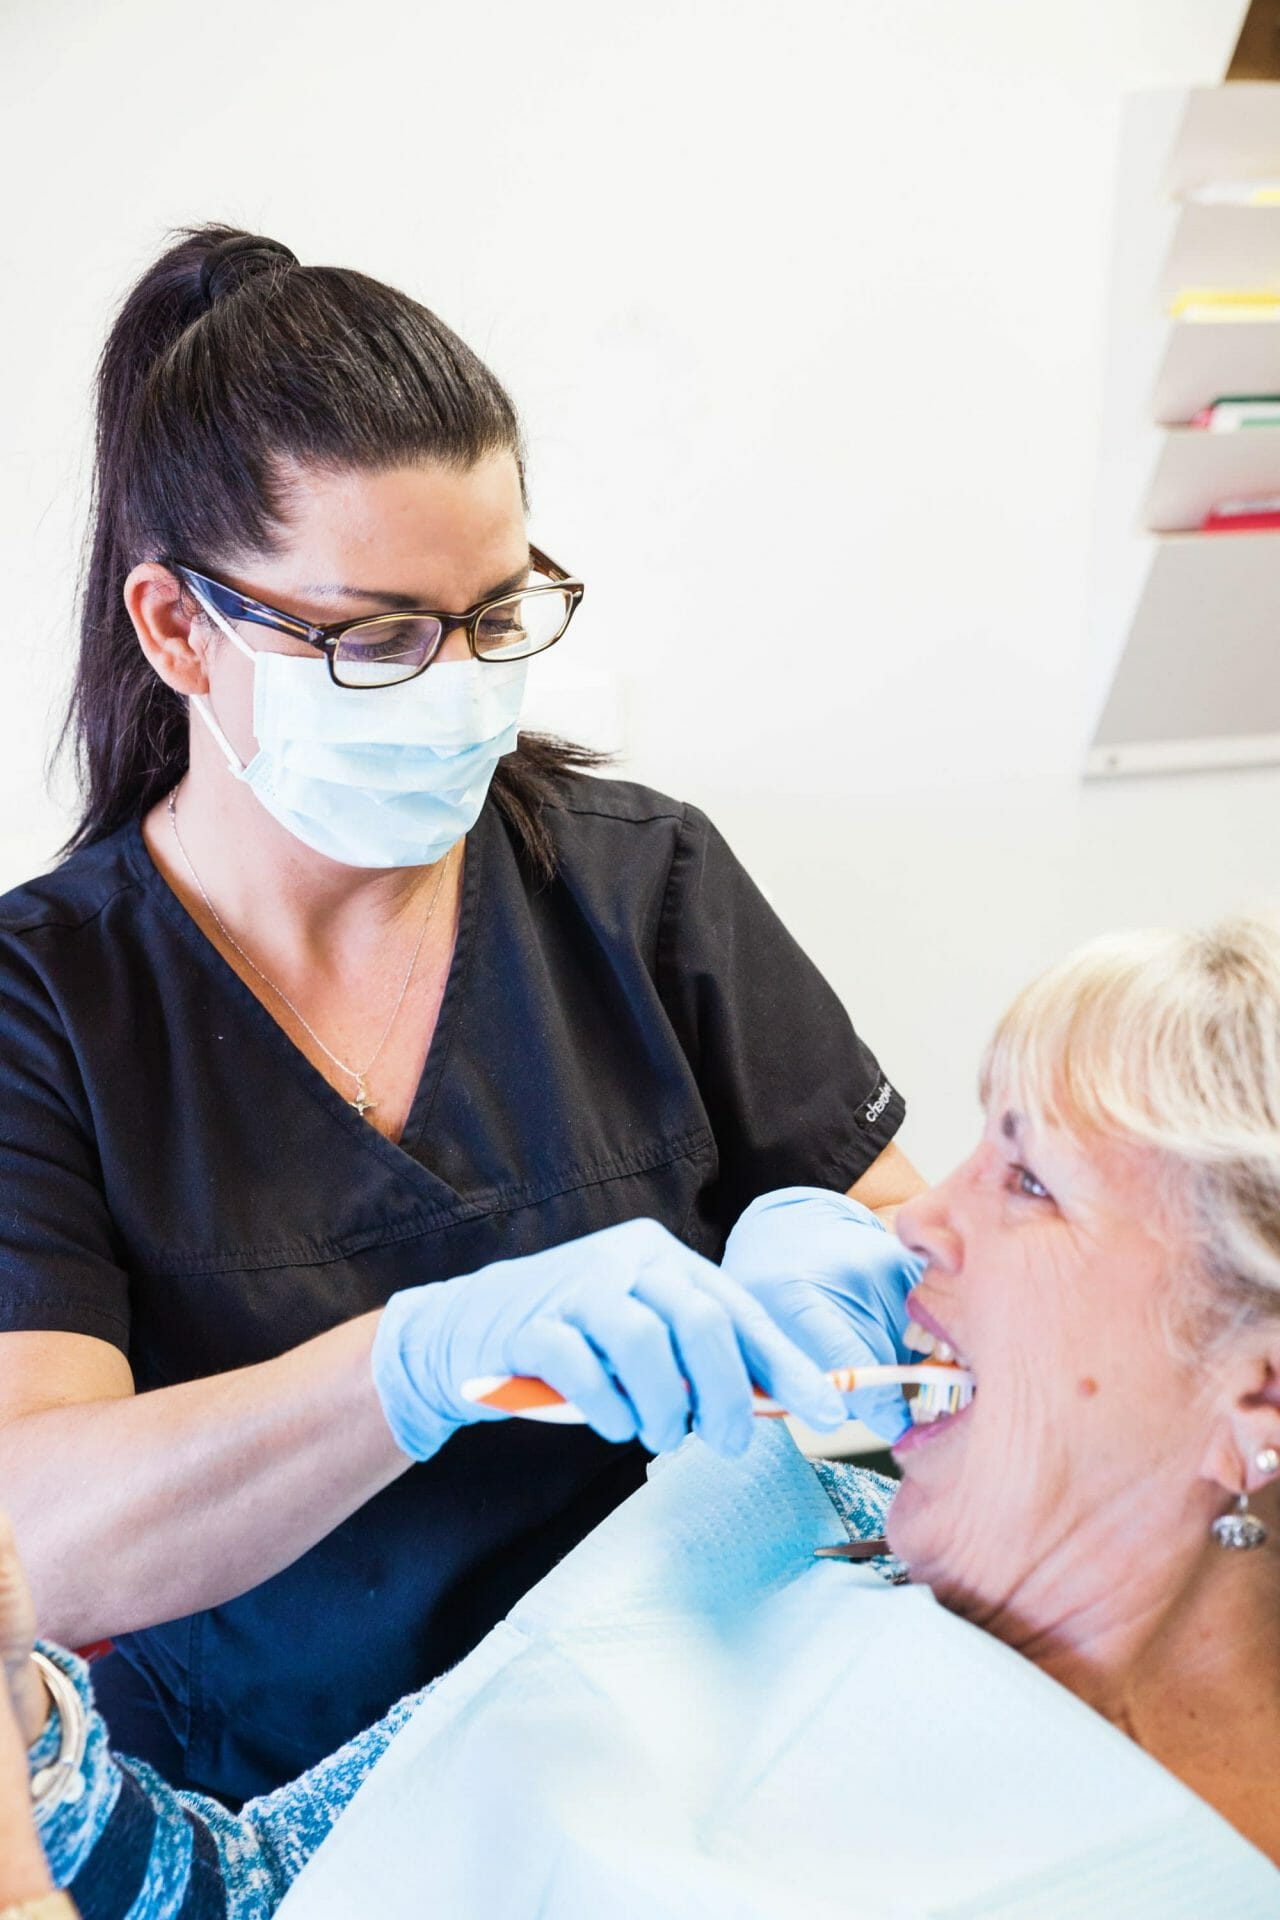 hygienist brushing patient's teeth